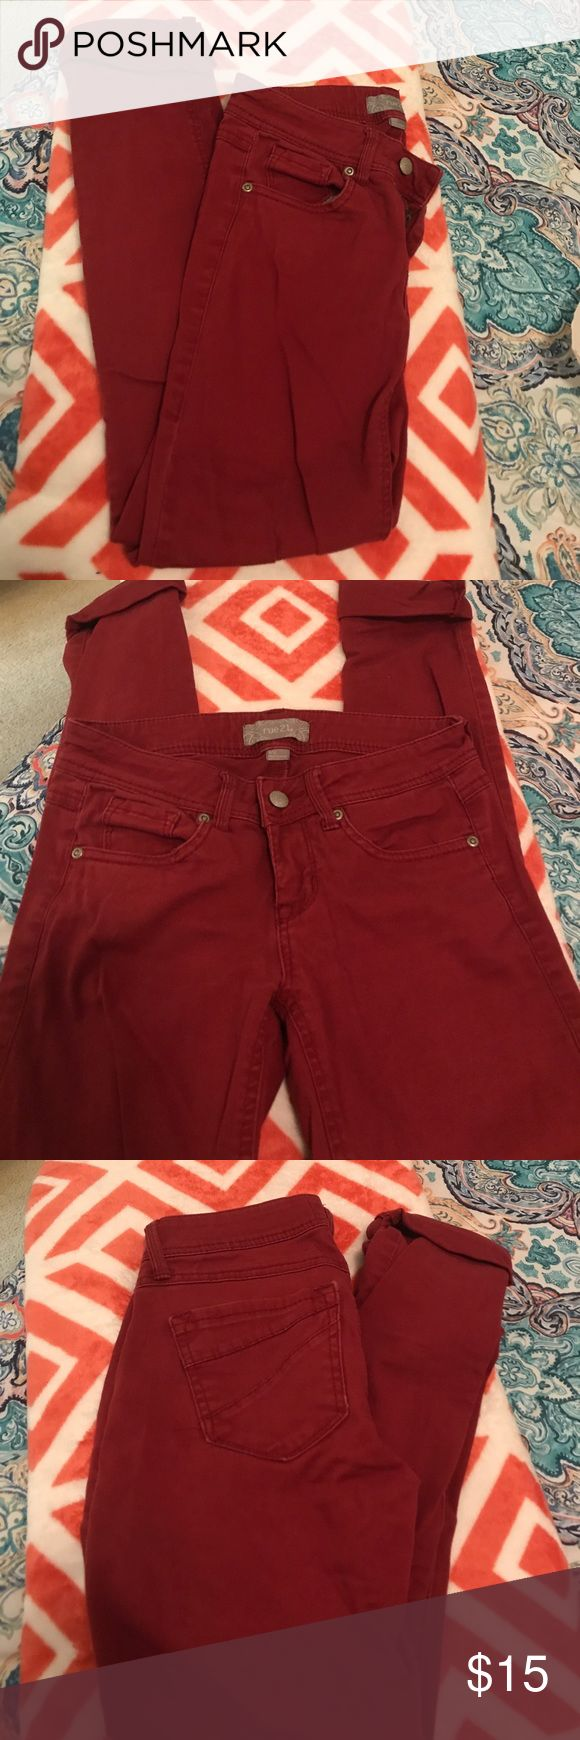 Rue21 Burgundy Skinny Jeans Beautifully colored skinny jeans that are super comfortable! Selling because they're too small on me. Can be cuffed or uncuffed. Has standard 5 pockets. Has a great fit, not super stiff. 98% cotton, 2% spandex. Size 1/2 Rue21 Jeans Skinny